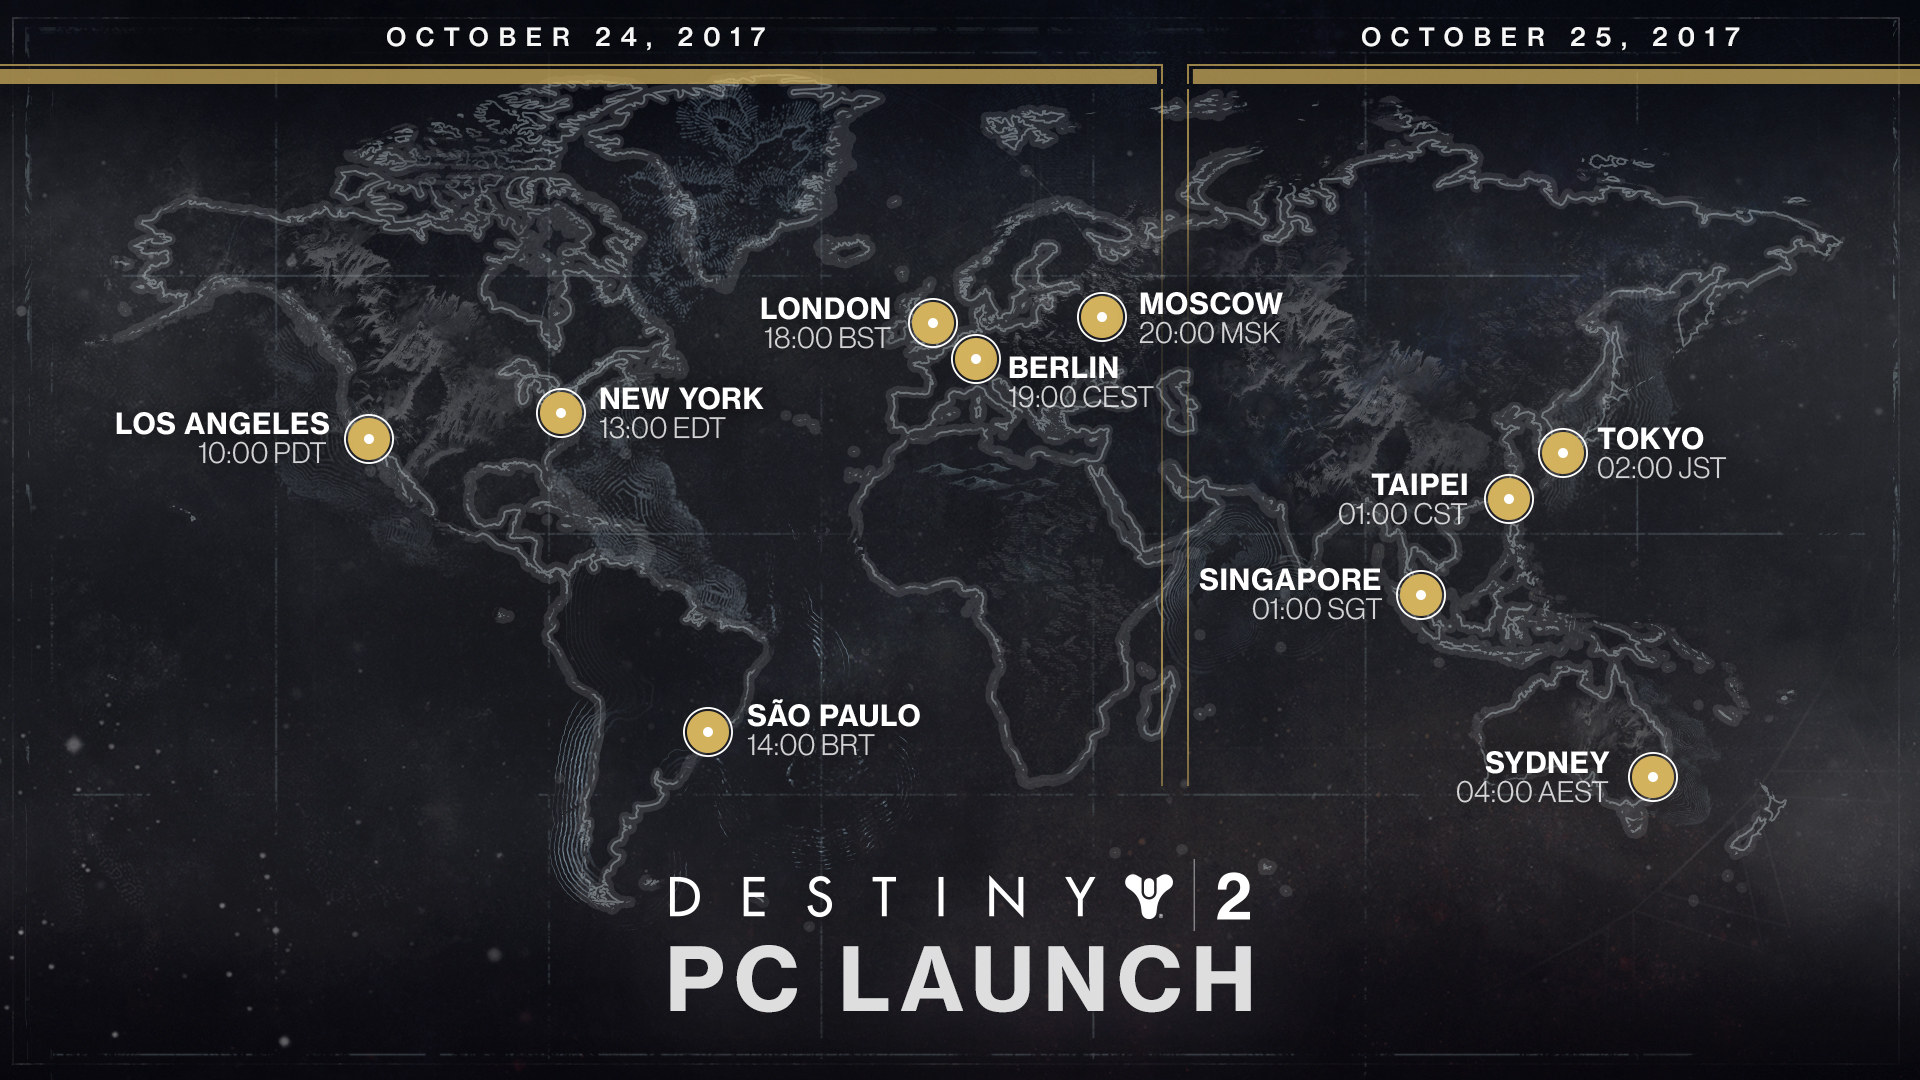 Here's what time Destiny 2 goes live on PC in your region